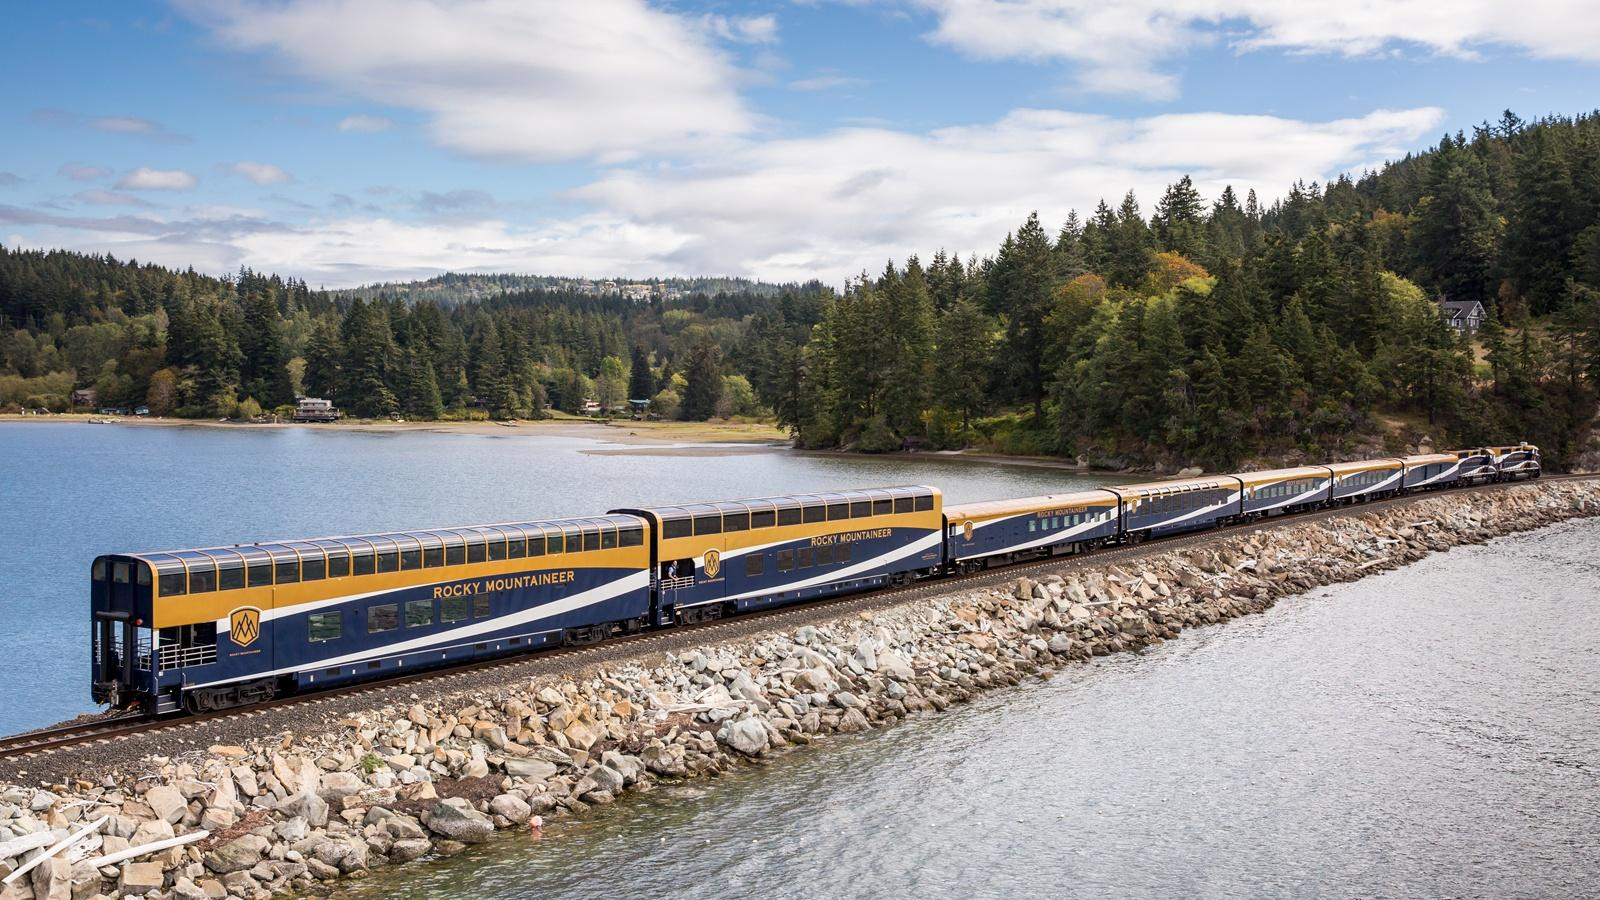 Rocky Mountaineer travelling along Chuckanut Bay.